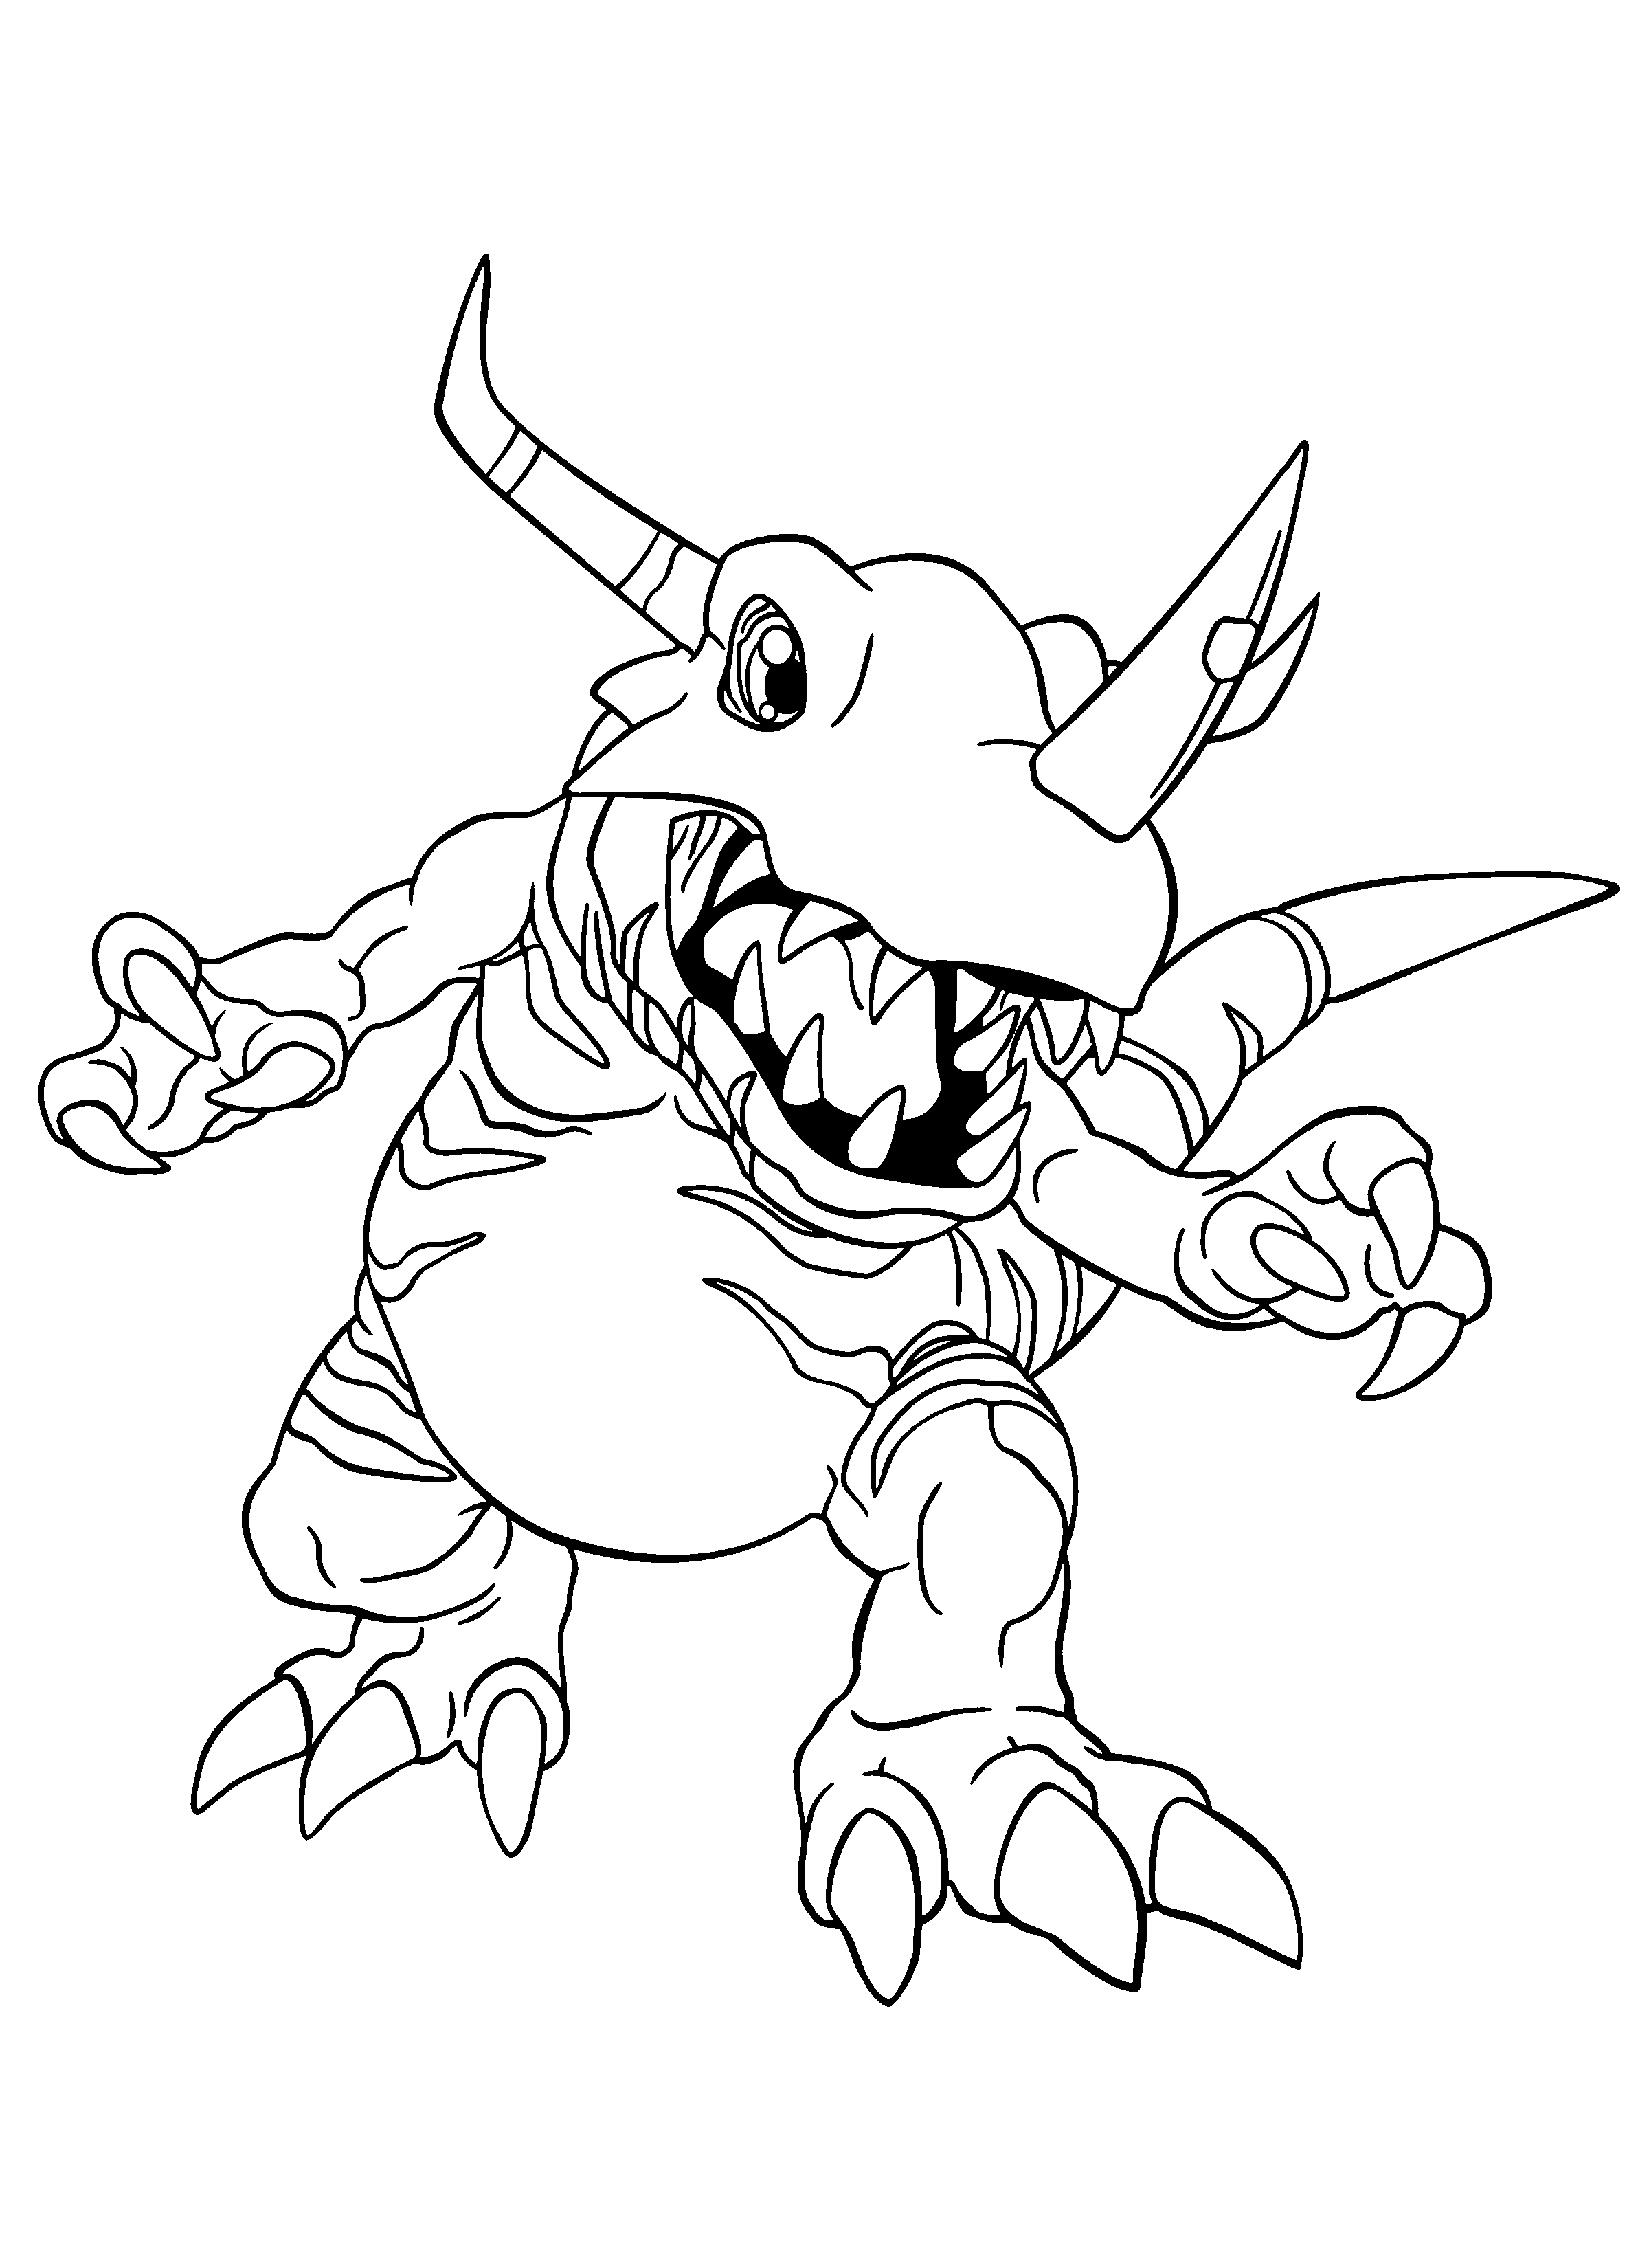 Greymon coloring pages download and print for free